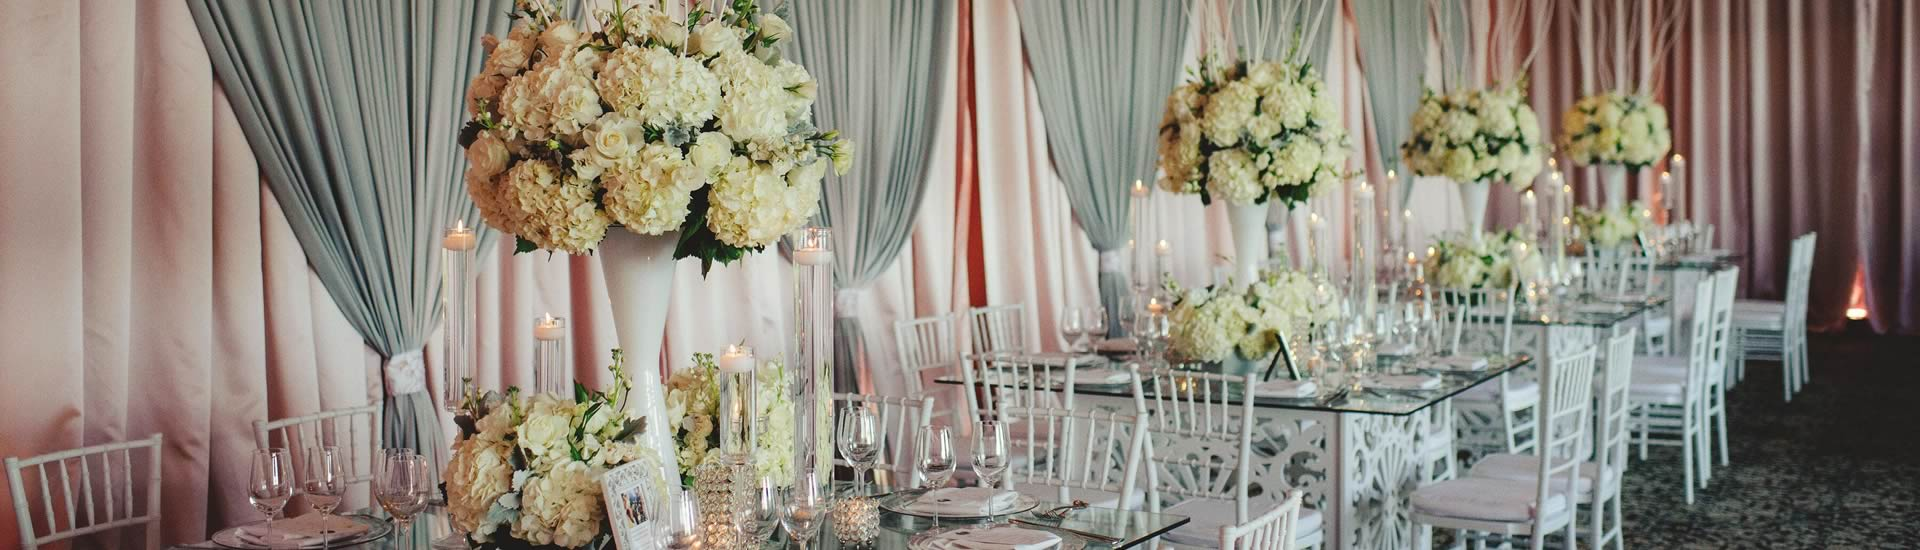 Floral and Decor - Vangies Events